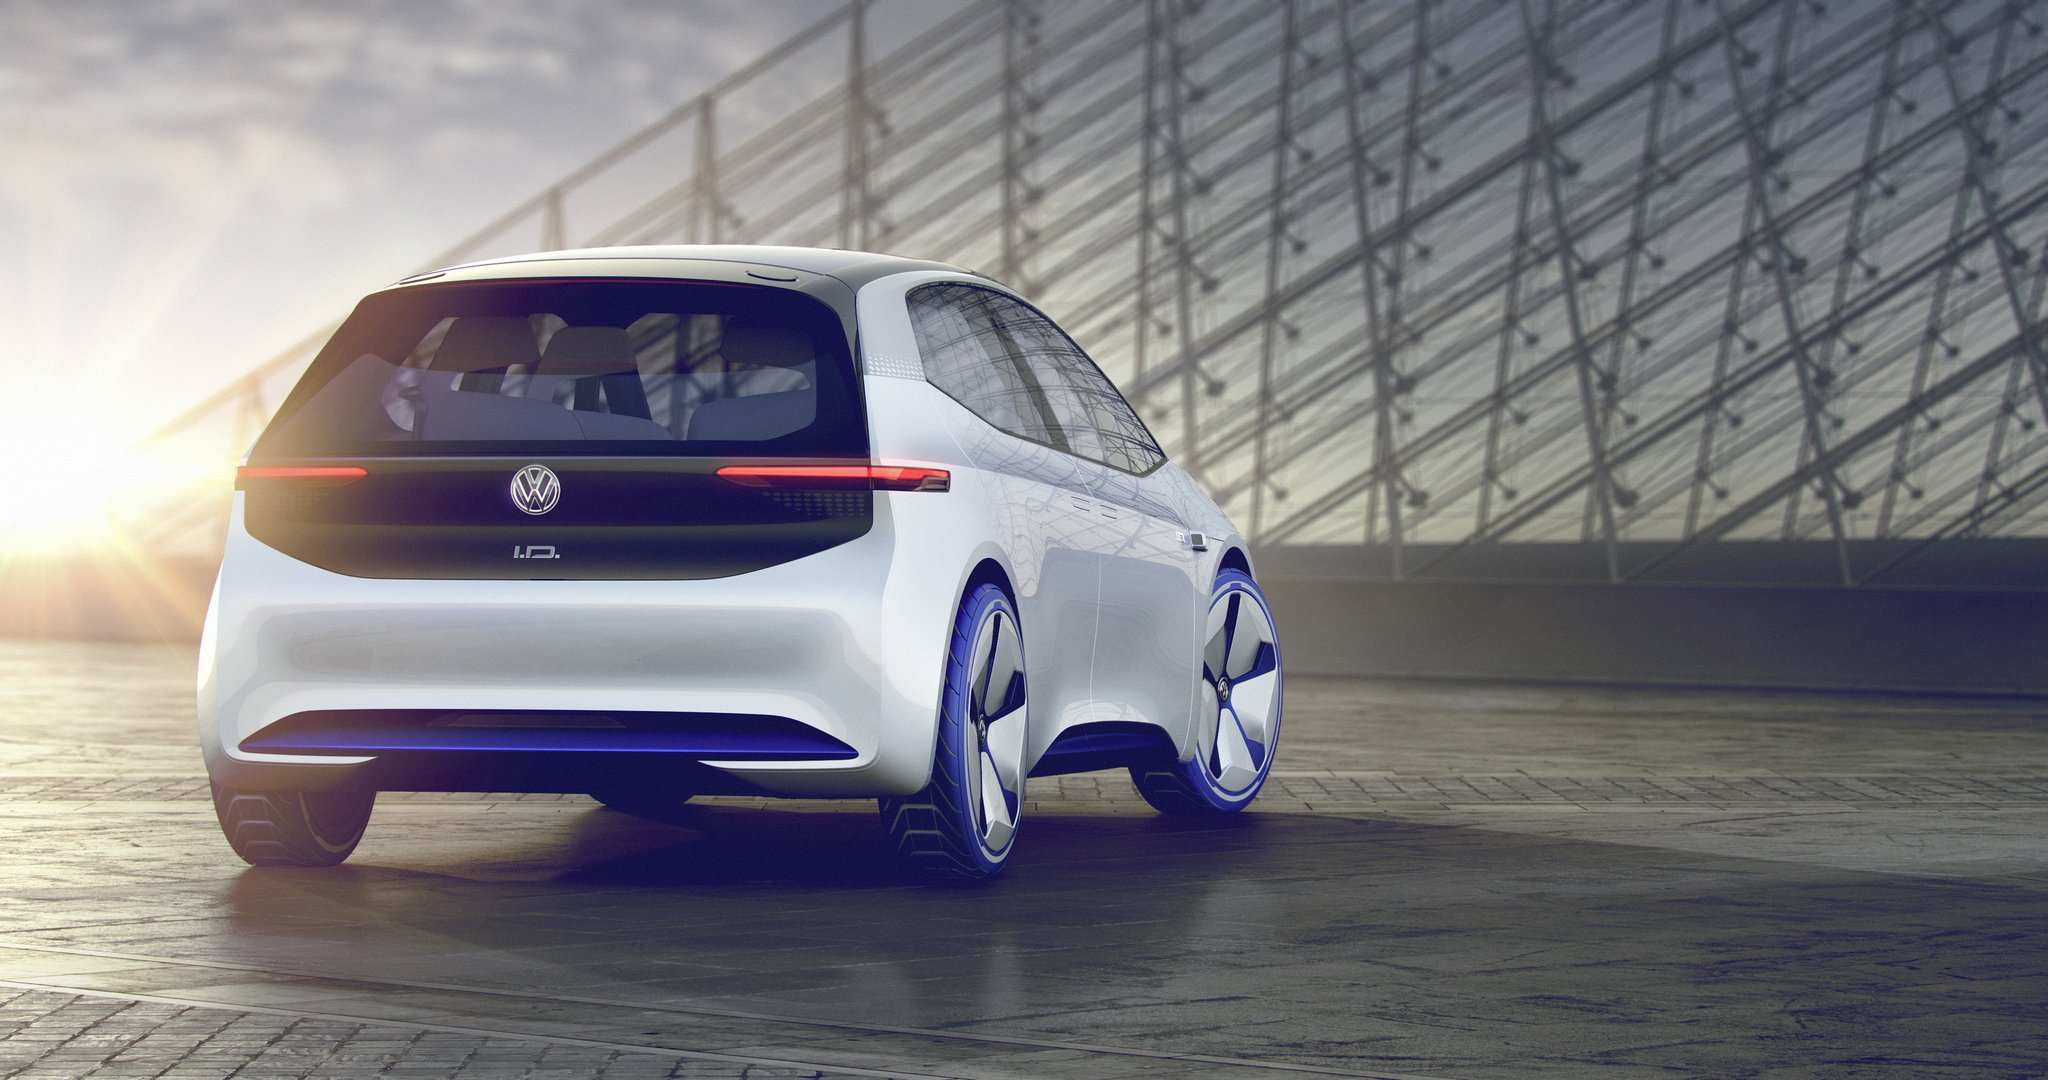 51 Best Volkswagen Electric Vehicles 2020 Review And Release Date